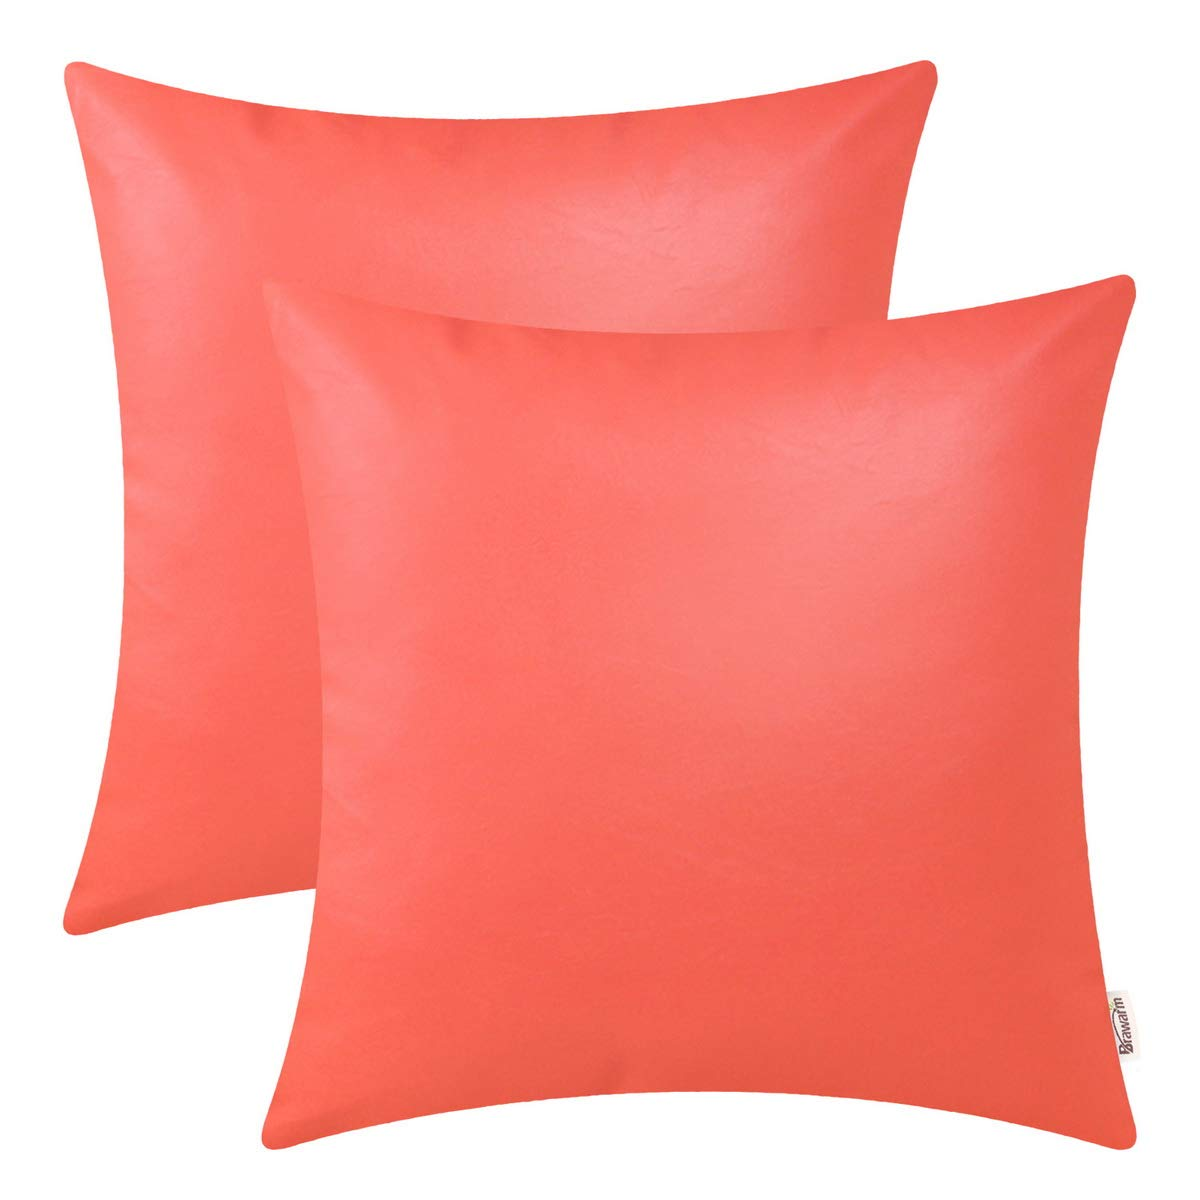 BRAWARM Pack of 2 Cozy Throw Pillow Covers Cases for Couch Sofa Home Decoration Solid Dyed Soft Faux Leather Both Sides 18 X 18 Inches Living Coral